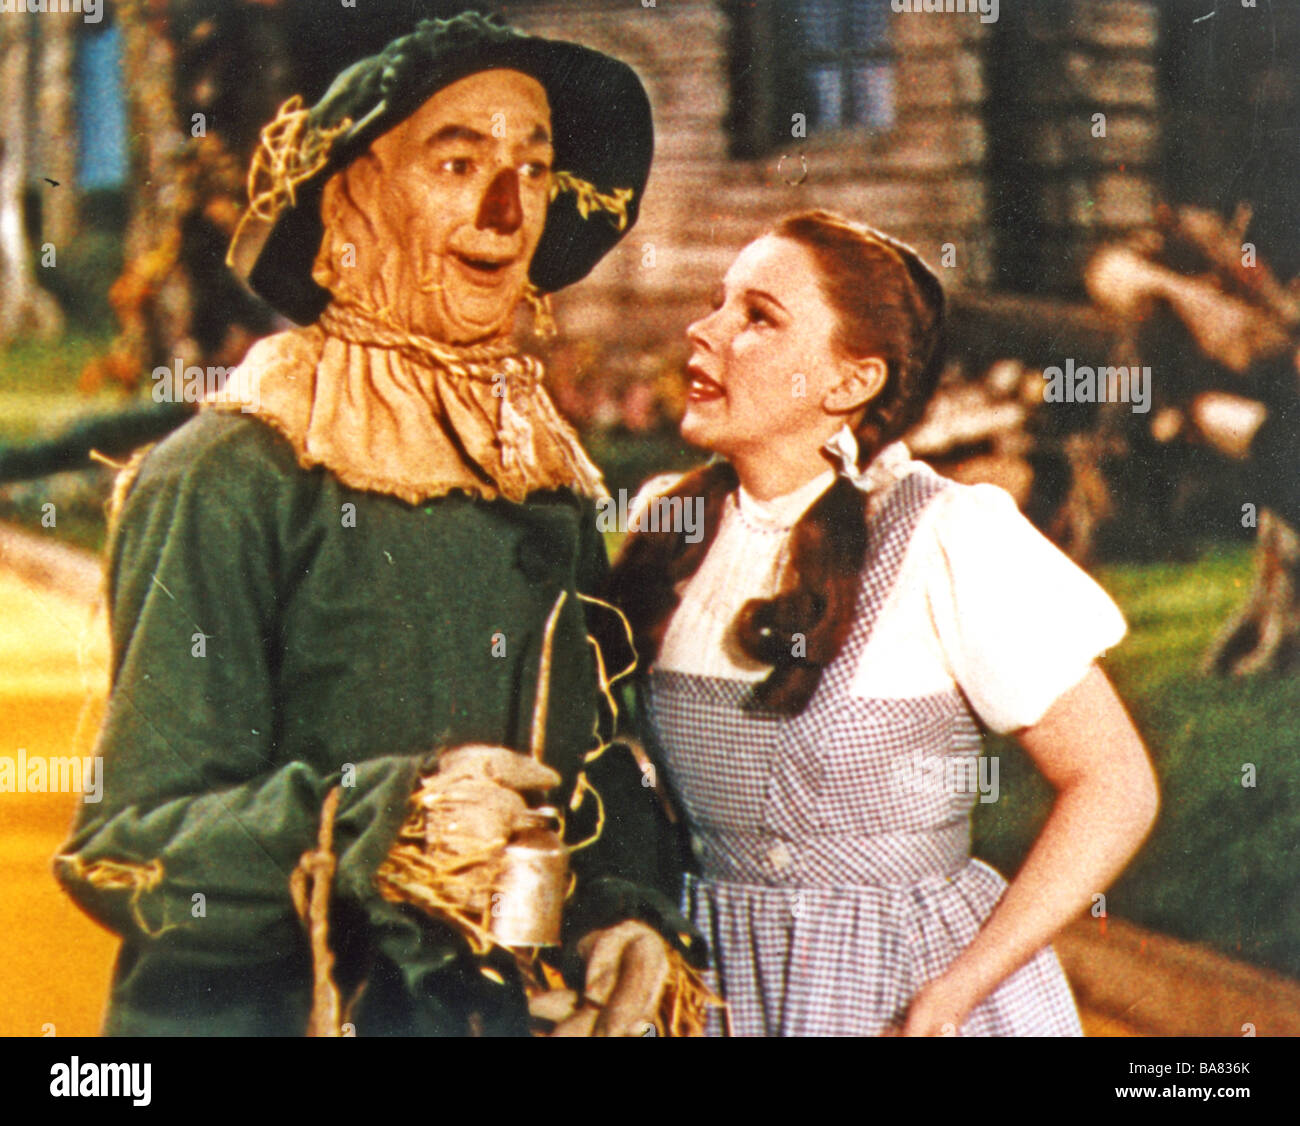 The wizard of oz dorothy stock photos the wizard of oz dorothy the wizard of oz 1939 mgm film with judy garland as dorothy and ray bolger as thecheapjerseys Choice Image